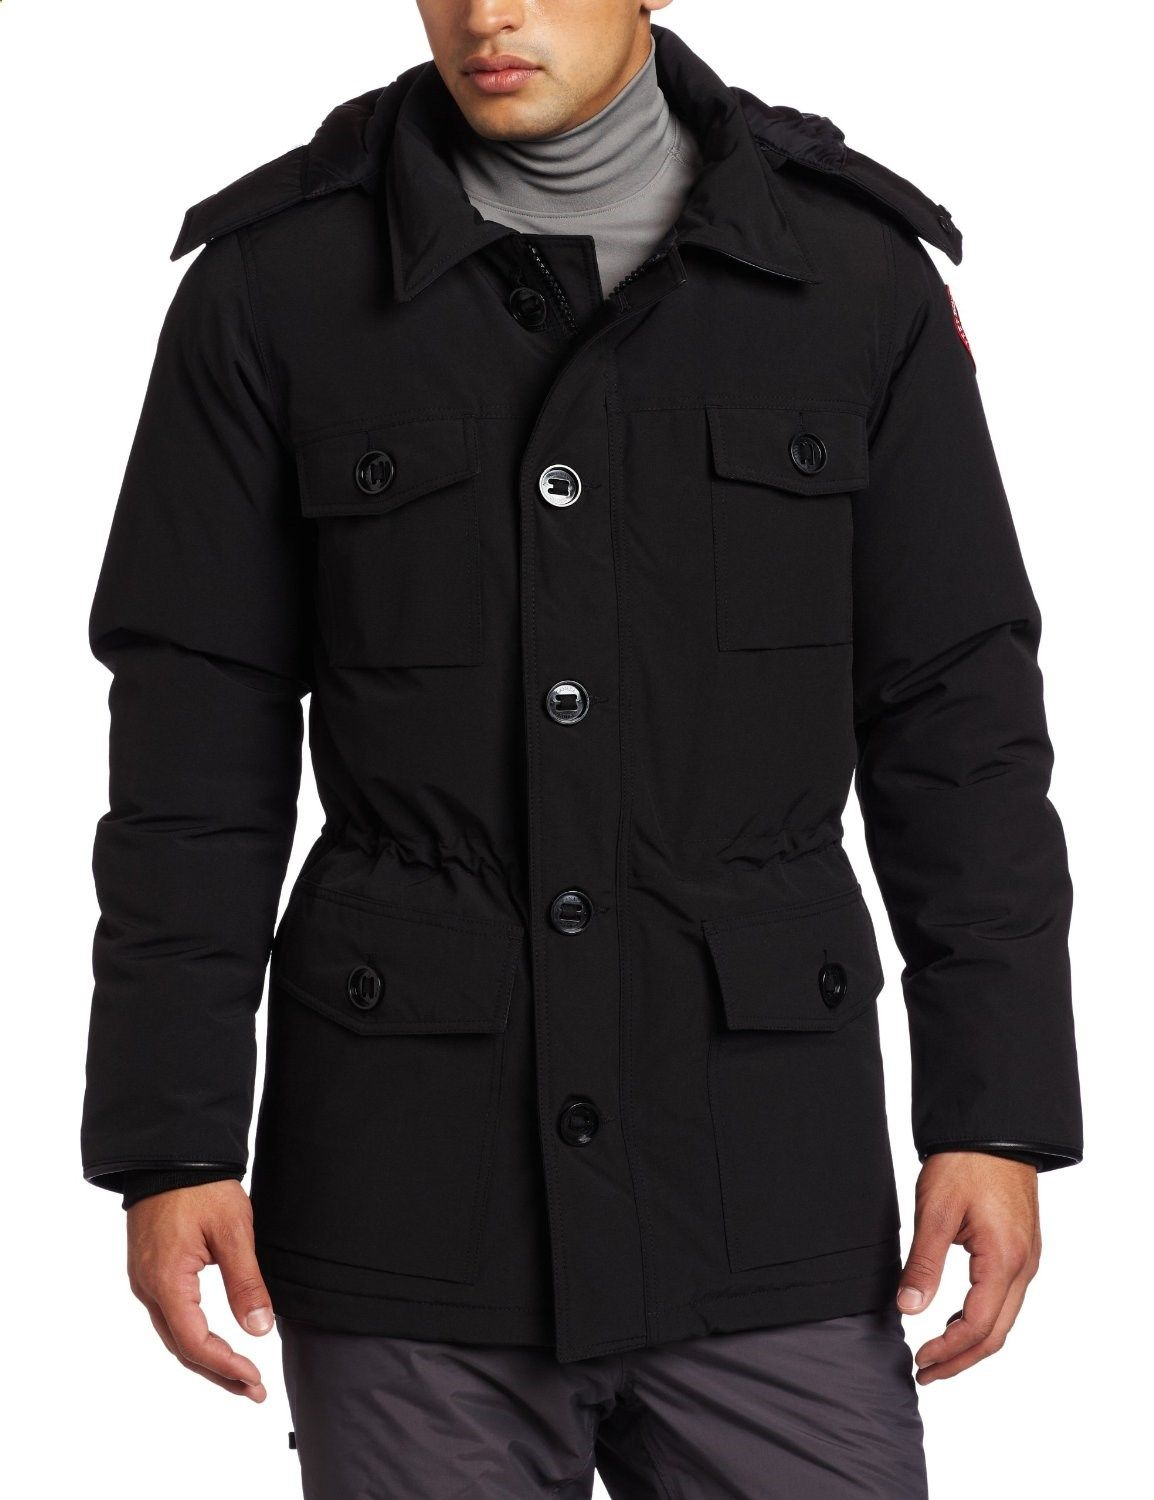 Canada goose jacket winter